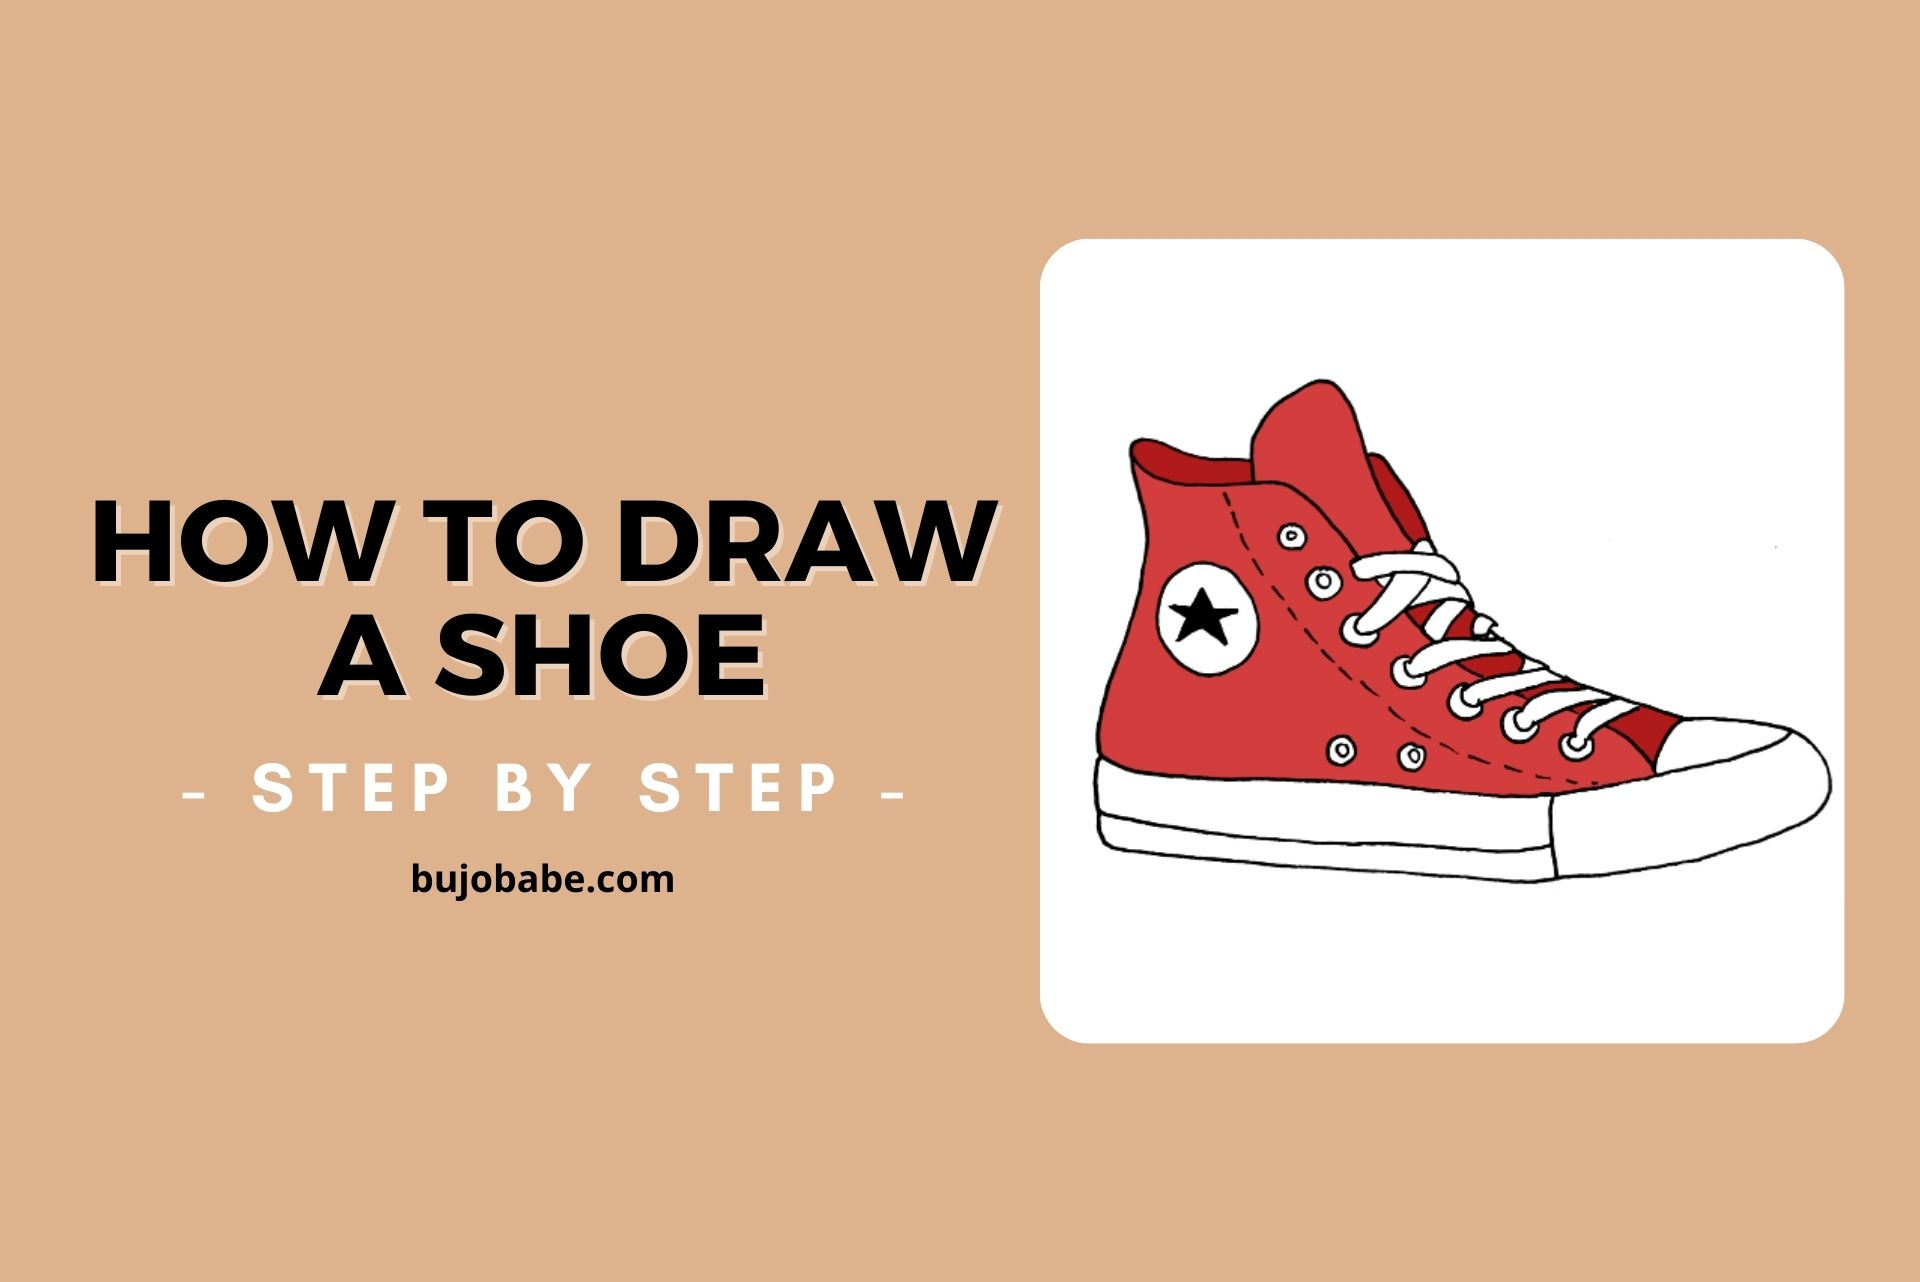 how to draw a shoe step by step